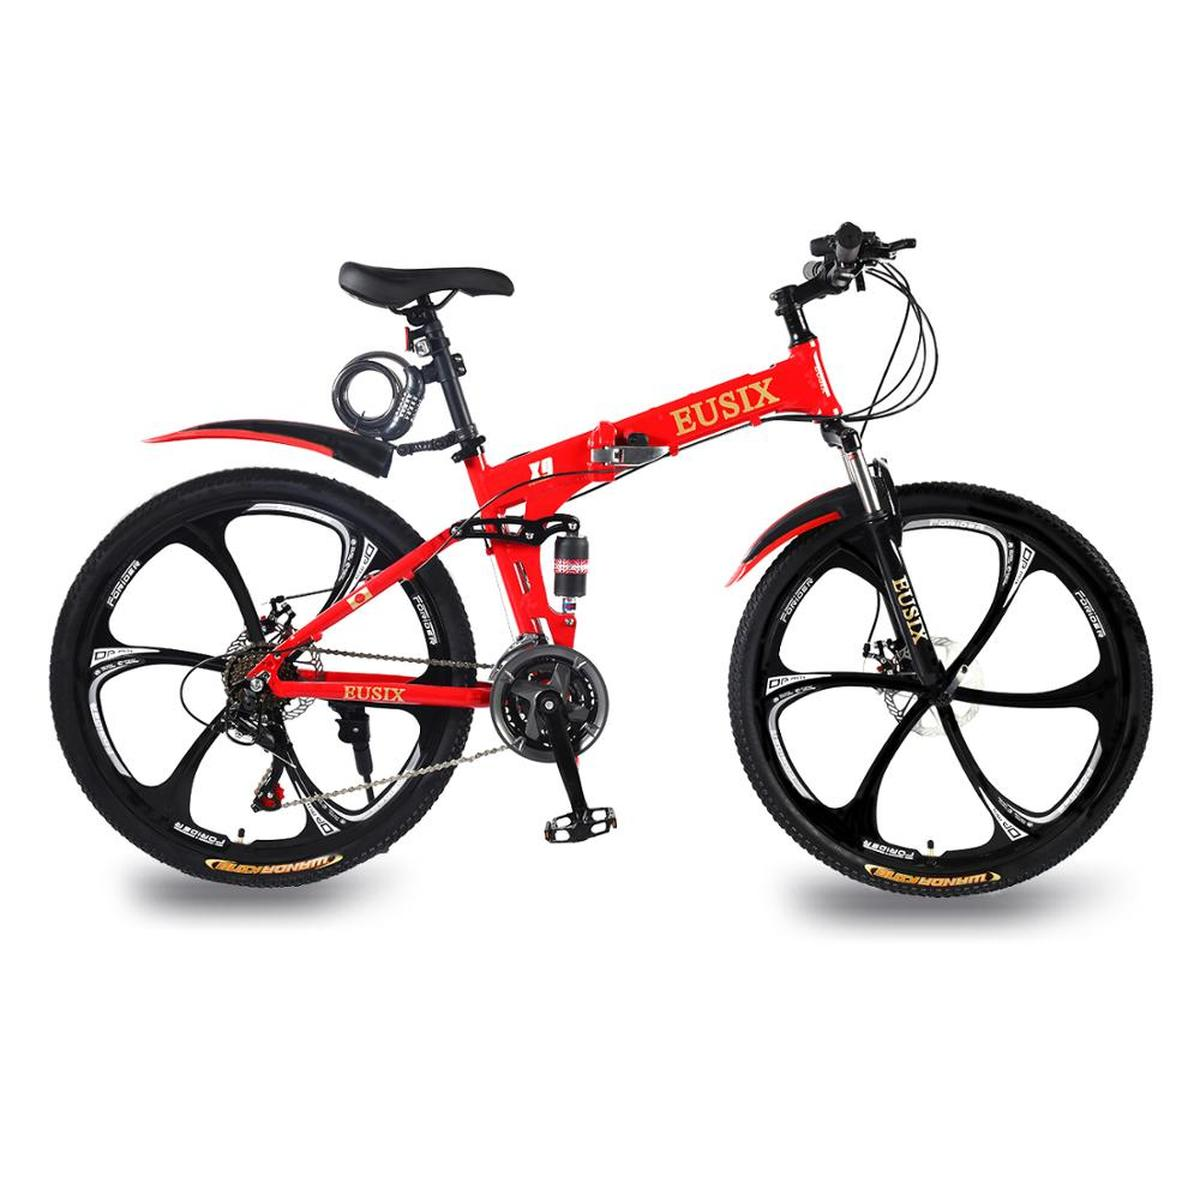 EUSIX X9 26 Inches Mountain Bike Aluminum Frame Folding Bicycle With Dual Suspension And 21 Speed Gear Mens Mountain Bicycle MTB